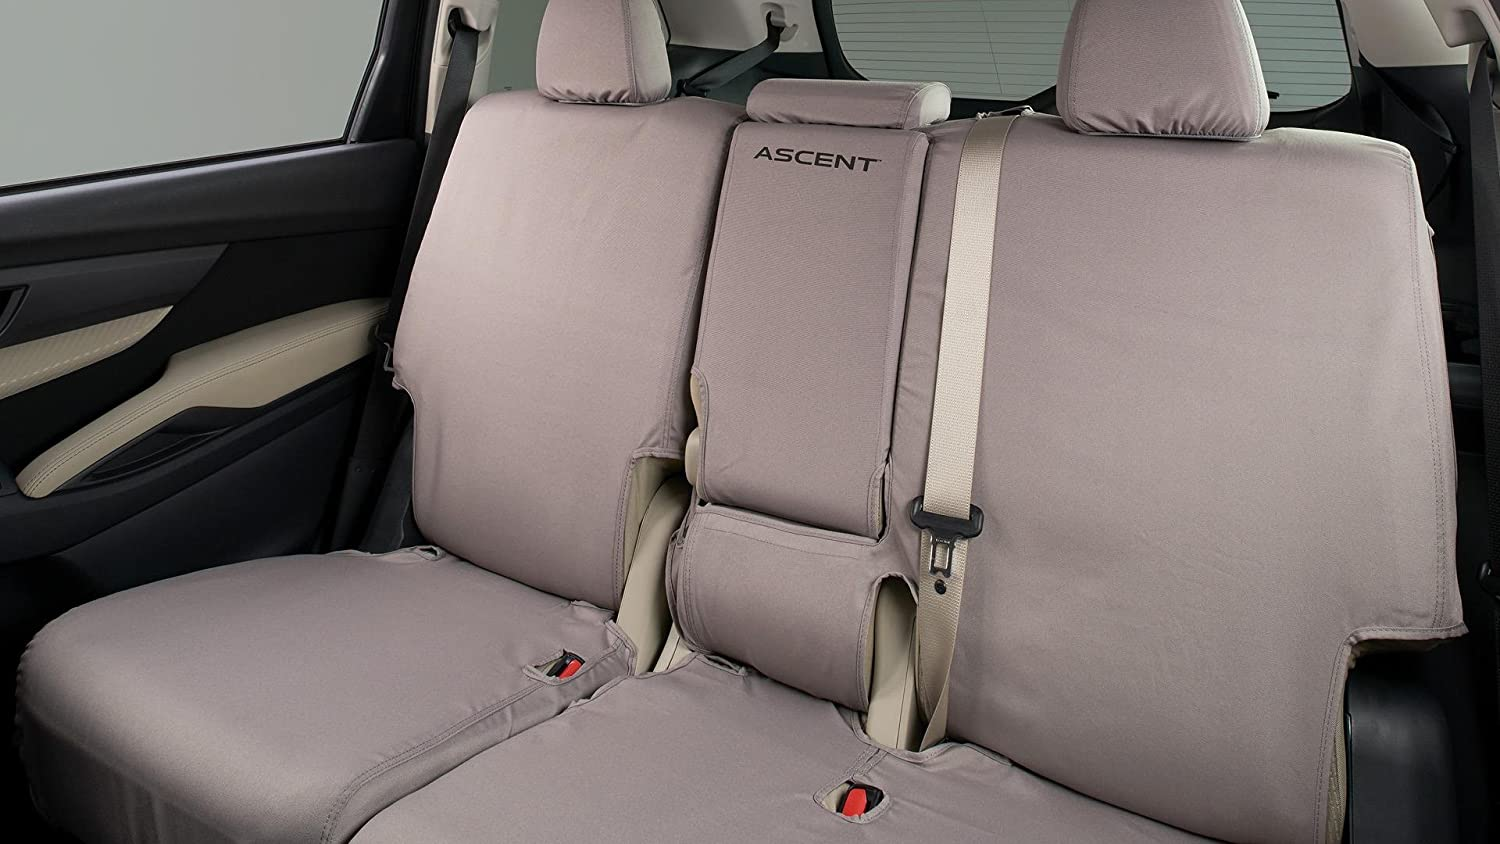 Miraculous Subaru Ascent 2Nd Row Bench Seat Cover Caraccident5 Cool Chair Designs And Ideas Caraccident5Info